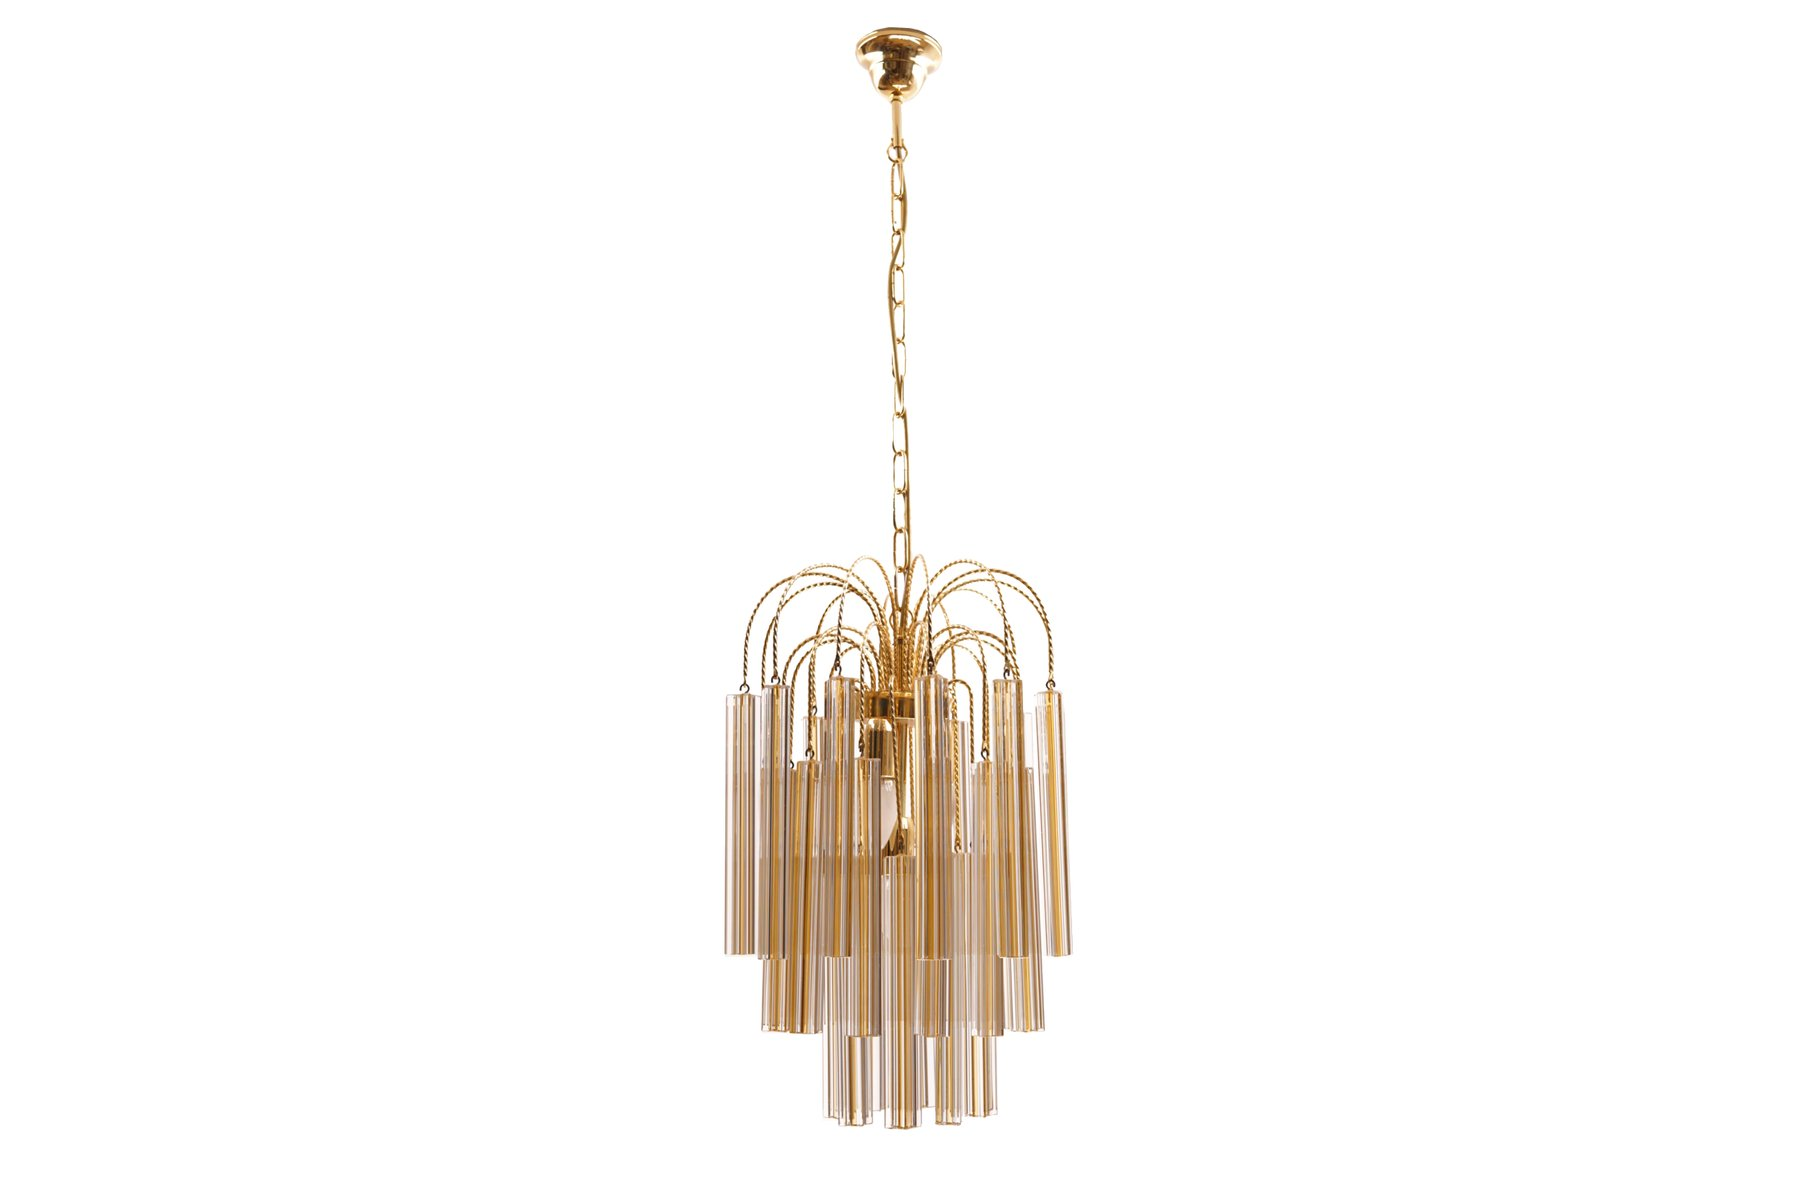 Vintage chandelier with murano glass from venini for sale at pamono aloadofball Choice Image